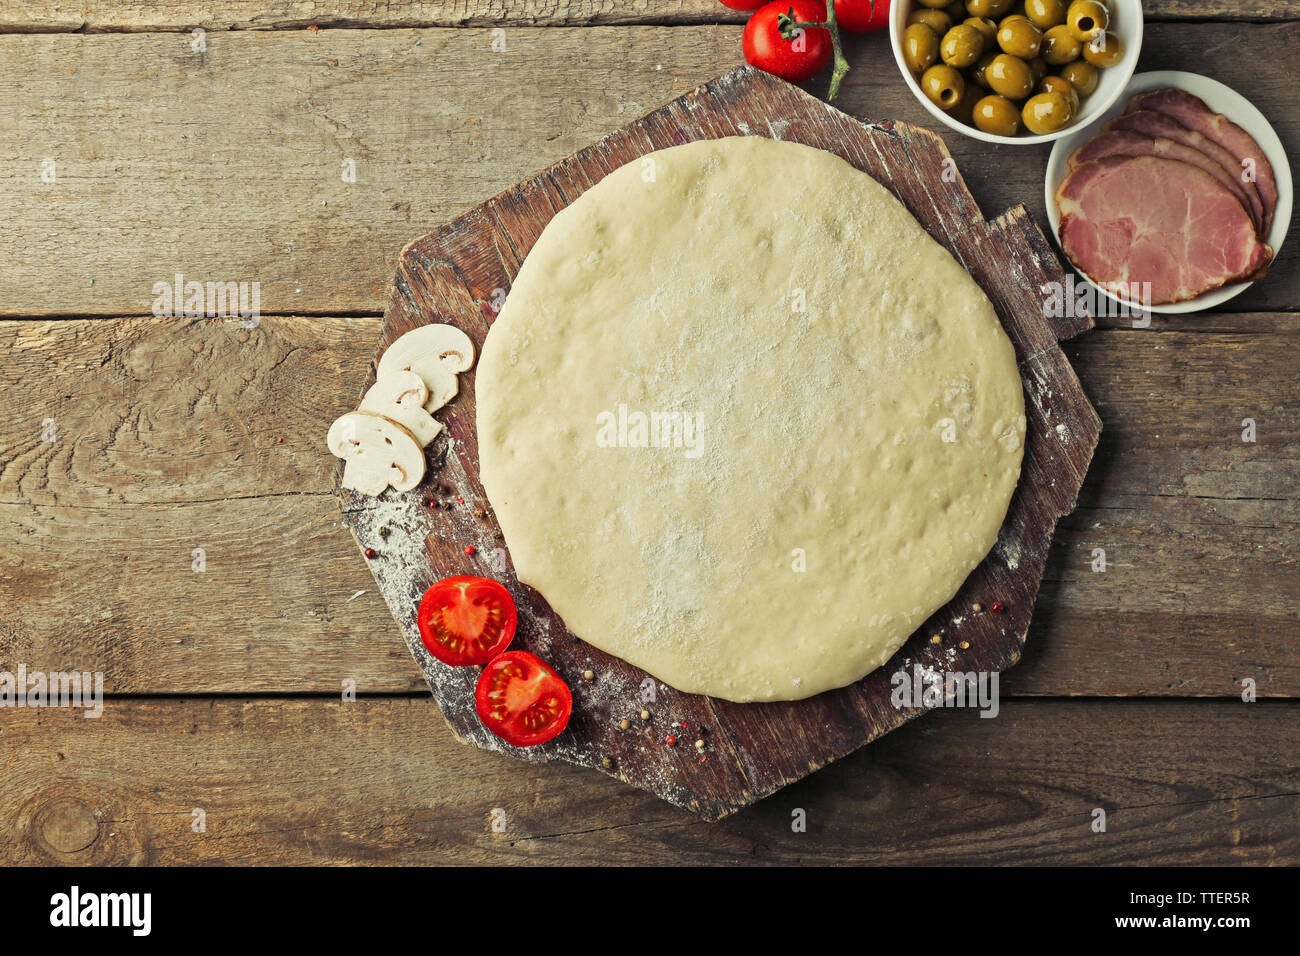 Fresh dough prepared for pizza with tomatoes and sliced mushrooms on a wooden board, close up - Stock Image